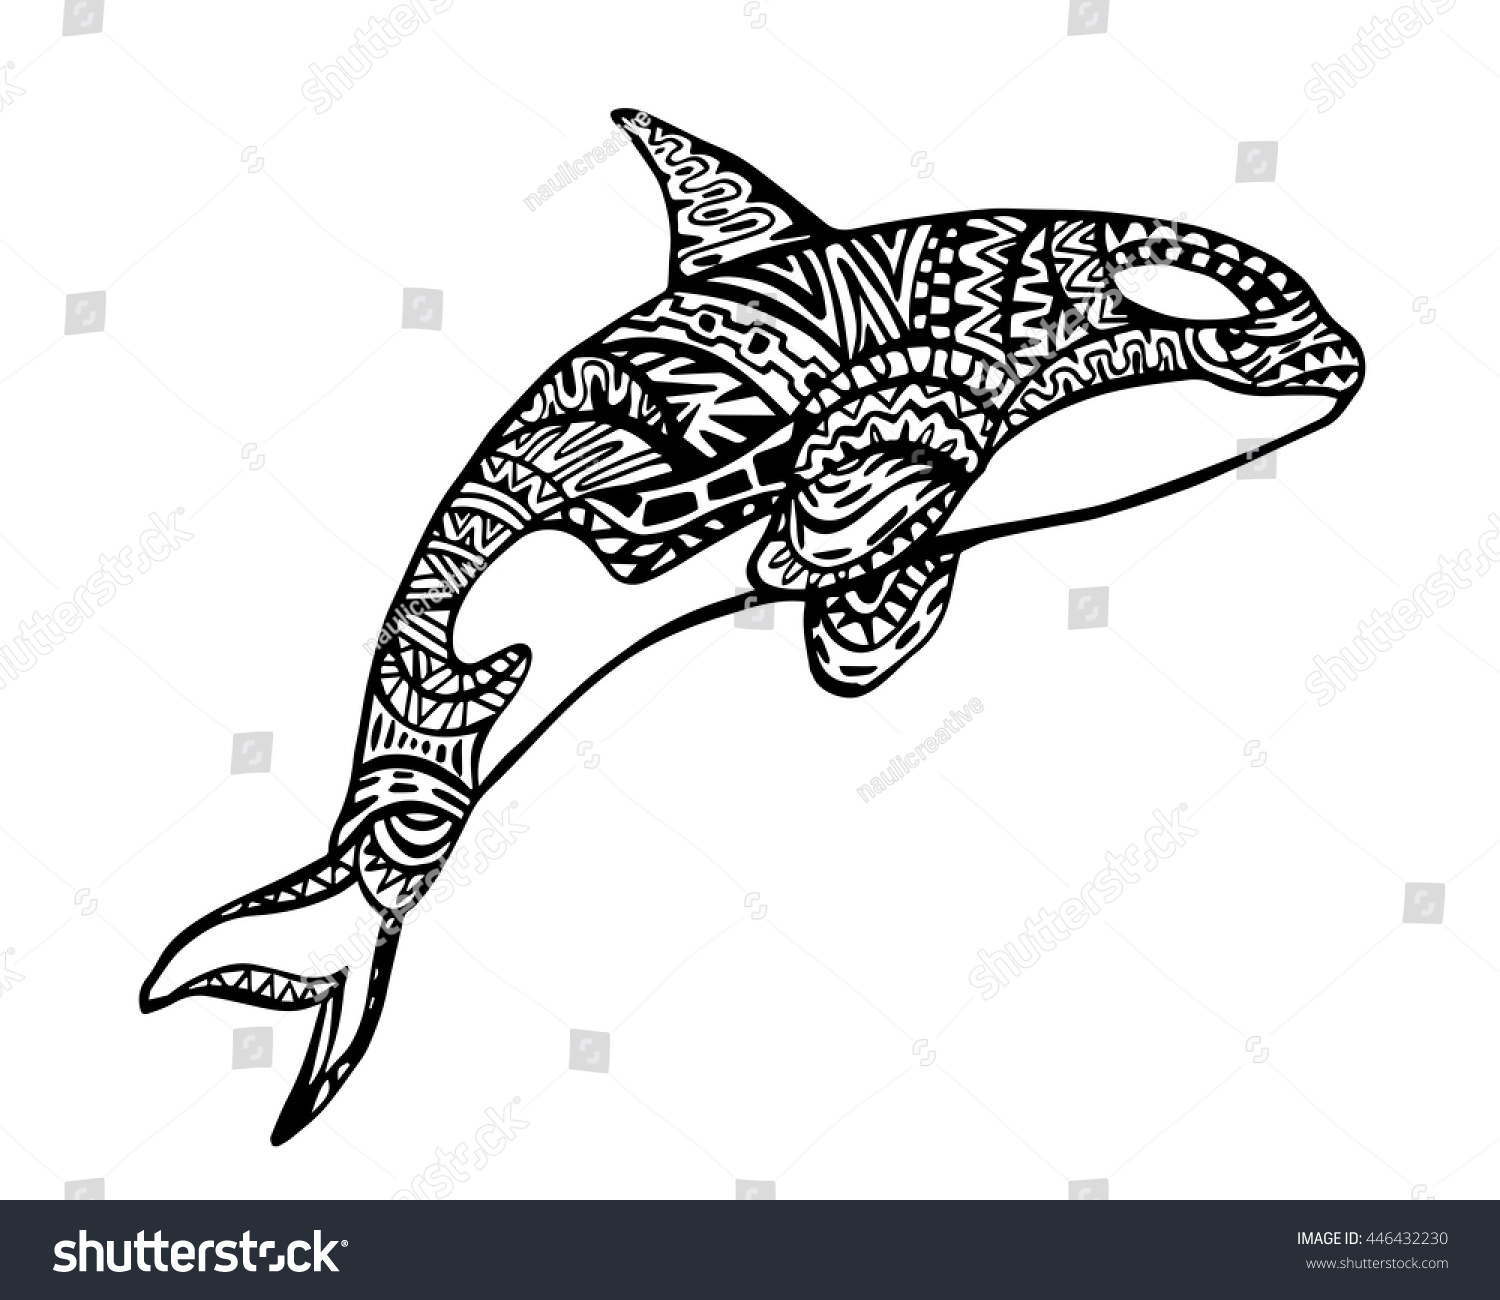 Stock vector ethnic animal doodle detail pattern killer whale - Ethnic Animal Doodle Detail Pattern Killer Whale Zentangle Illustration